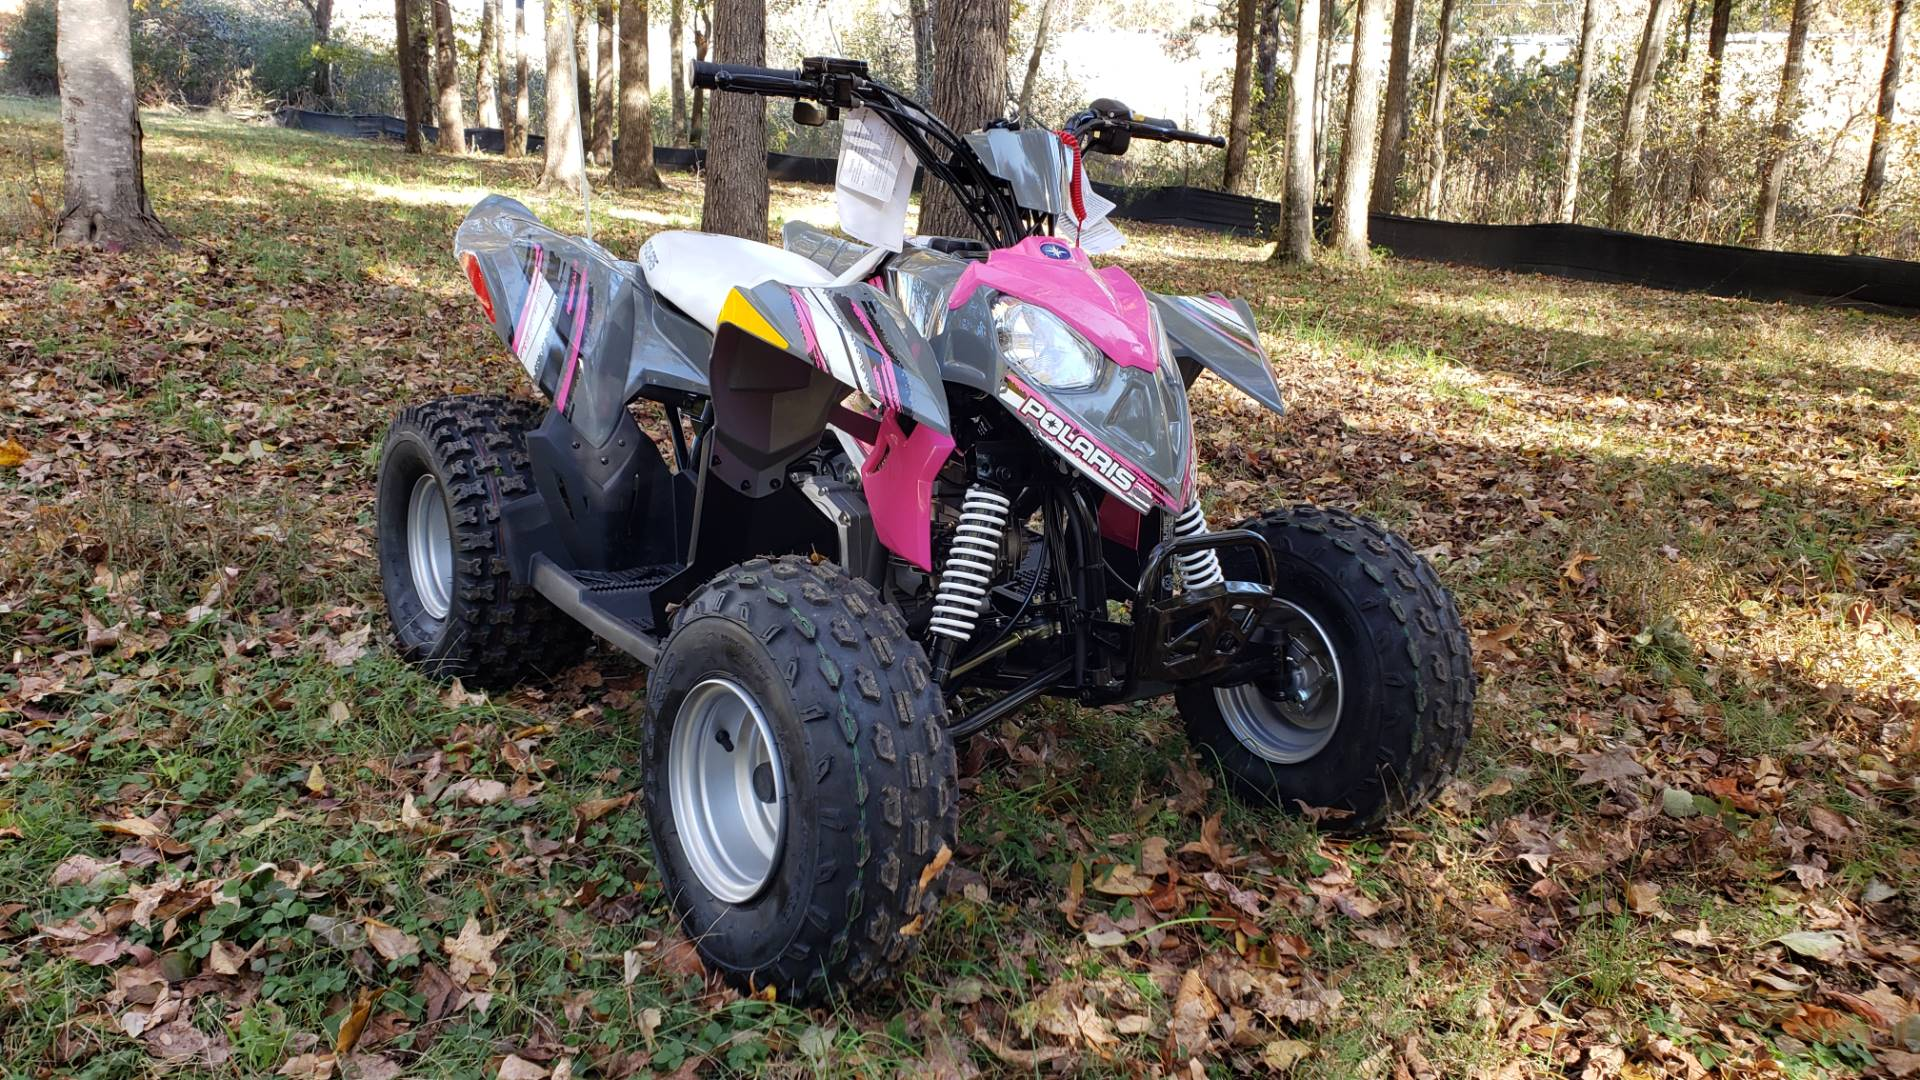 2019 Polaris Outlaw 110 for sale 7728